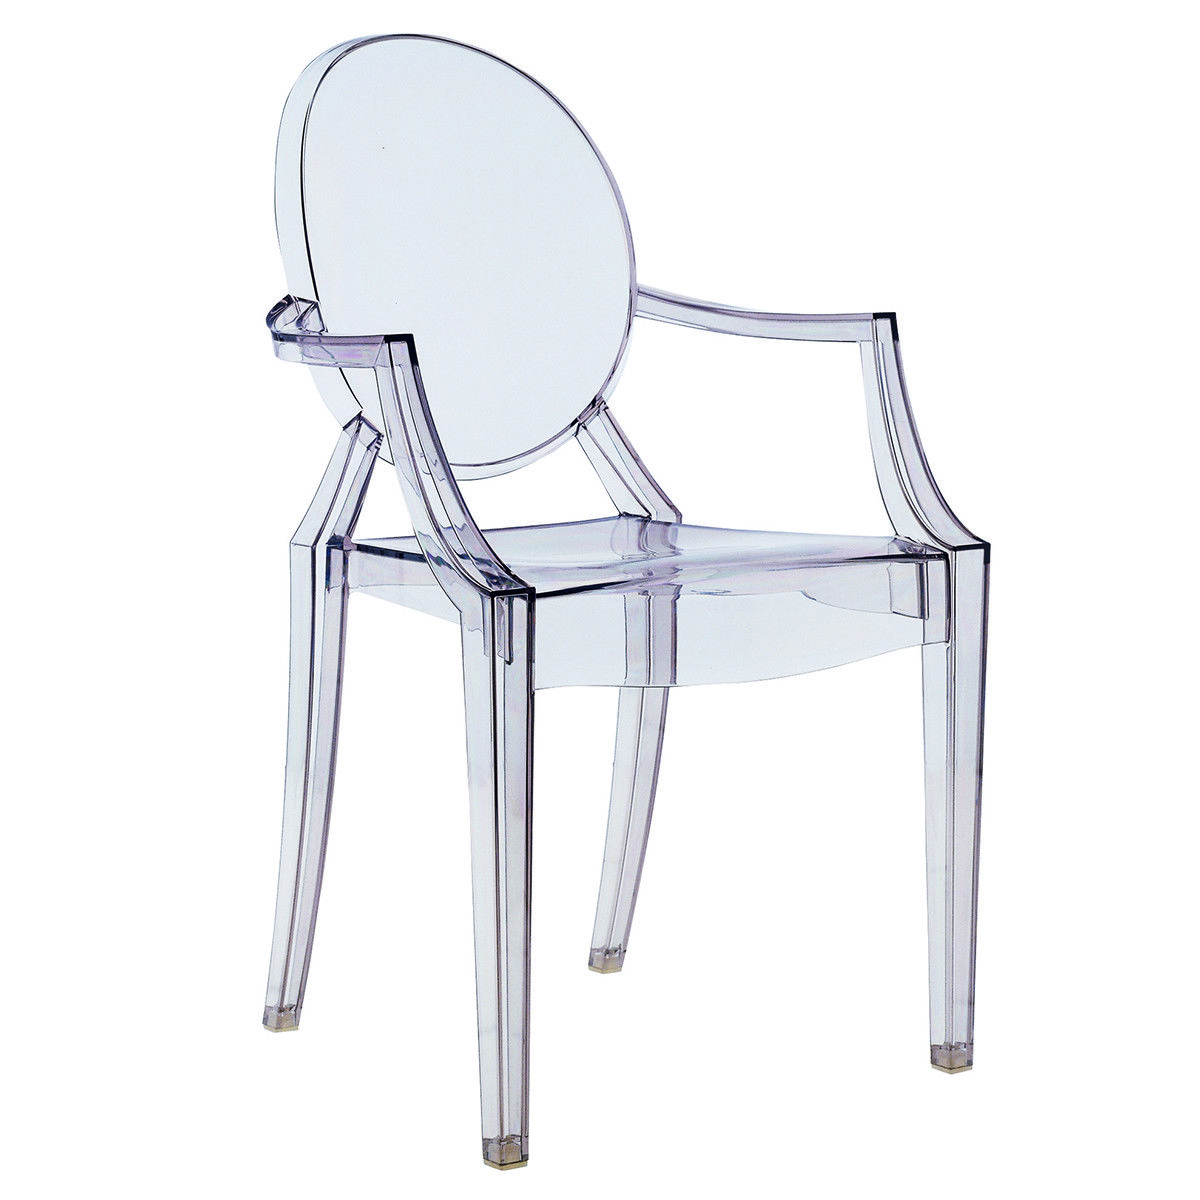 Fauteuil Transparent Starck Louis Ghost Chair For Kartell Designed By Philippe Starck 557